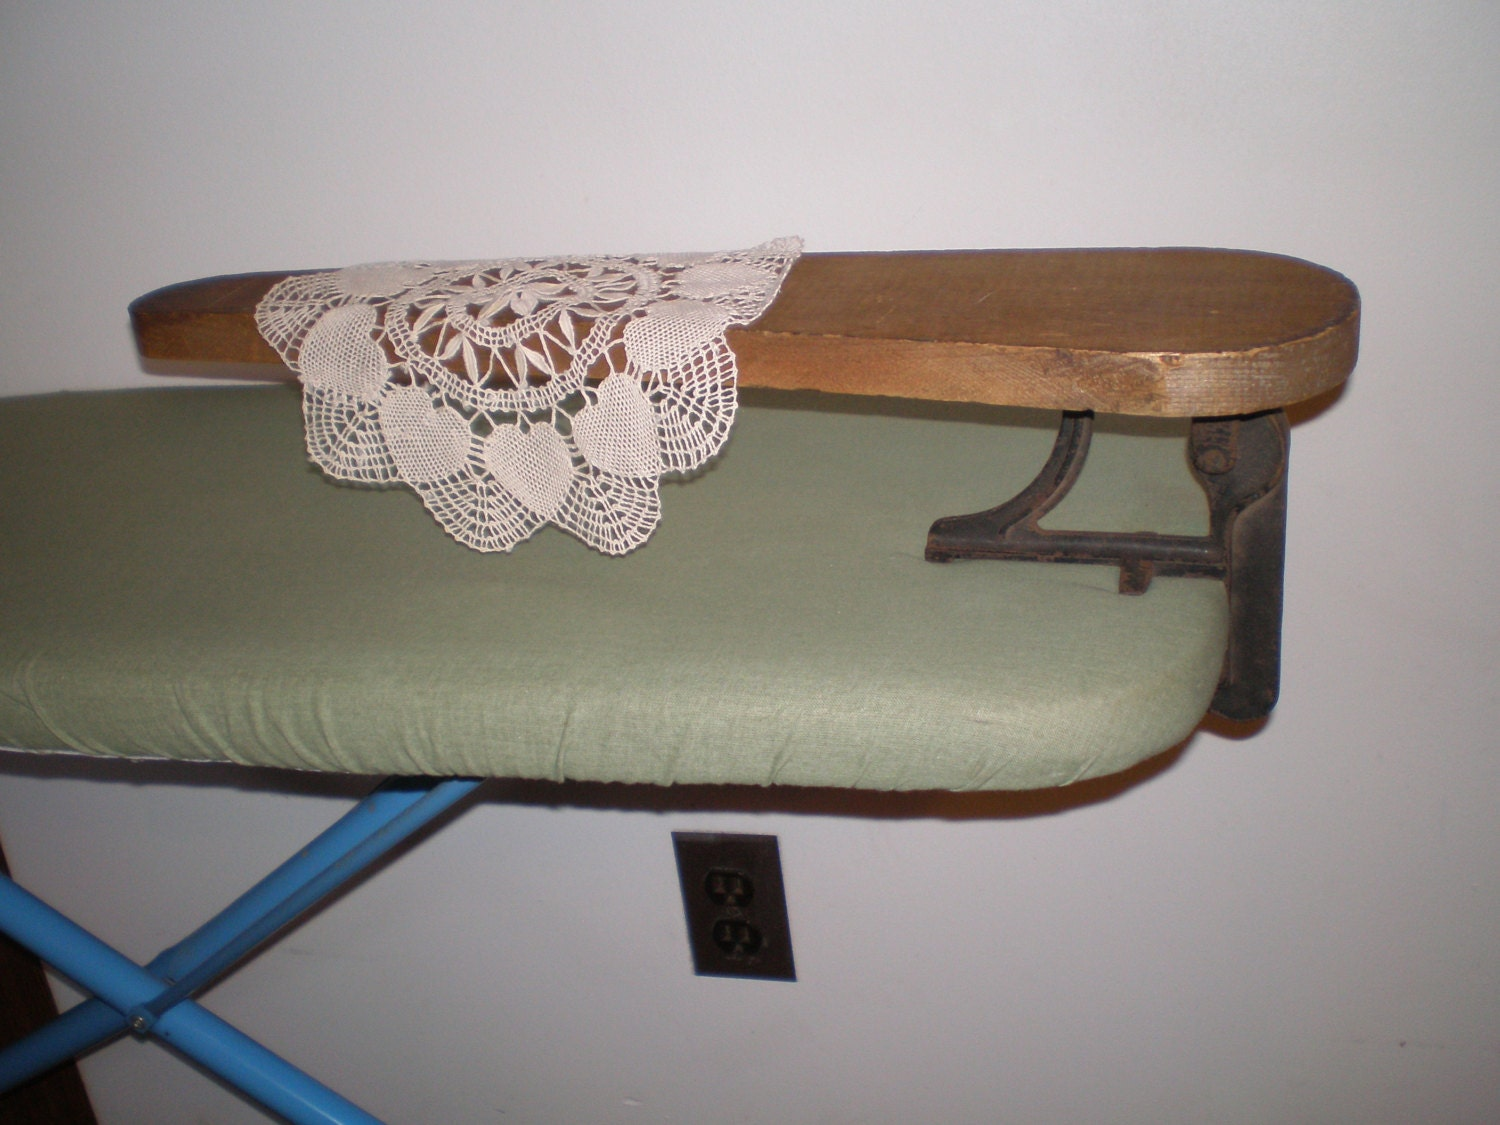 wood and cast iron sleeve ironing board 1903 rochester ny. Black Bedroom Furniture Sets. Home Design Ideas